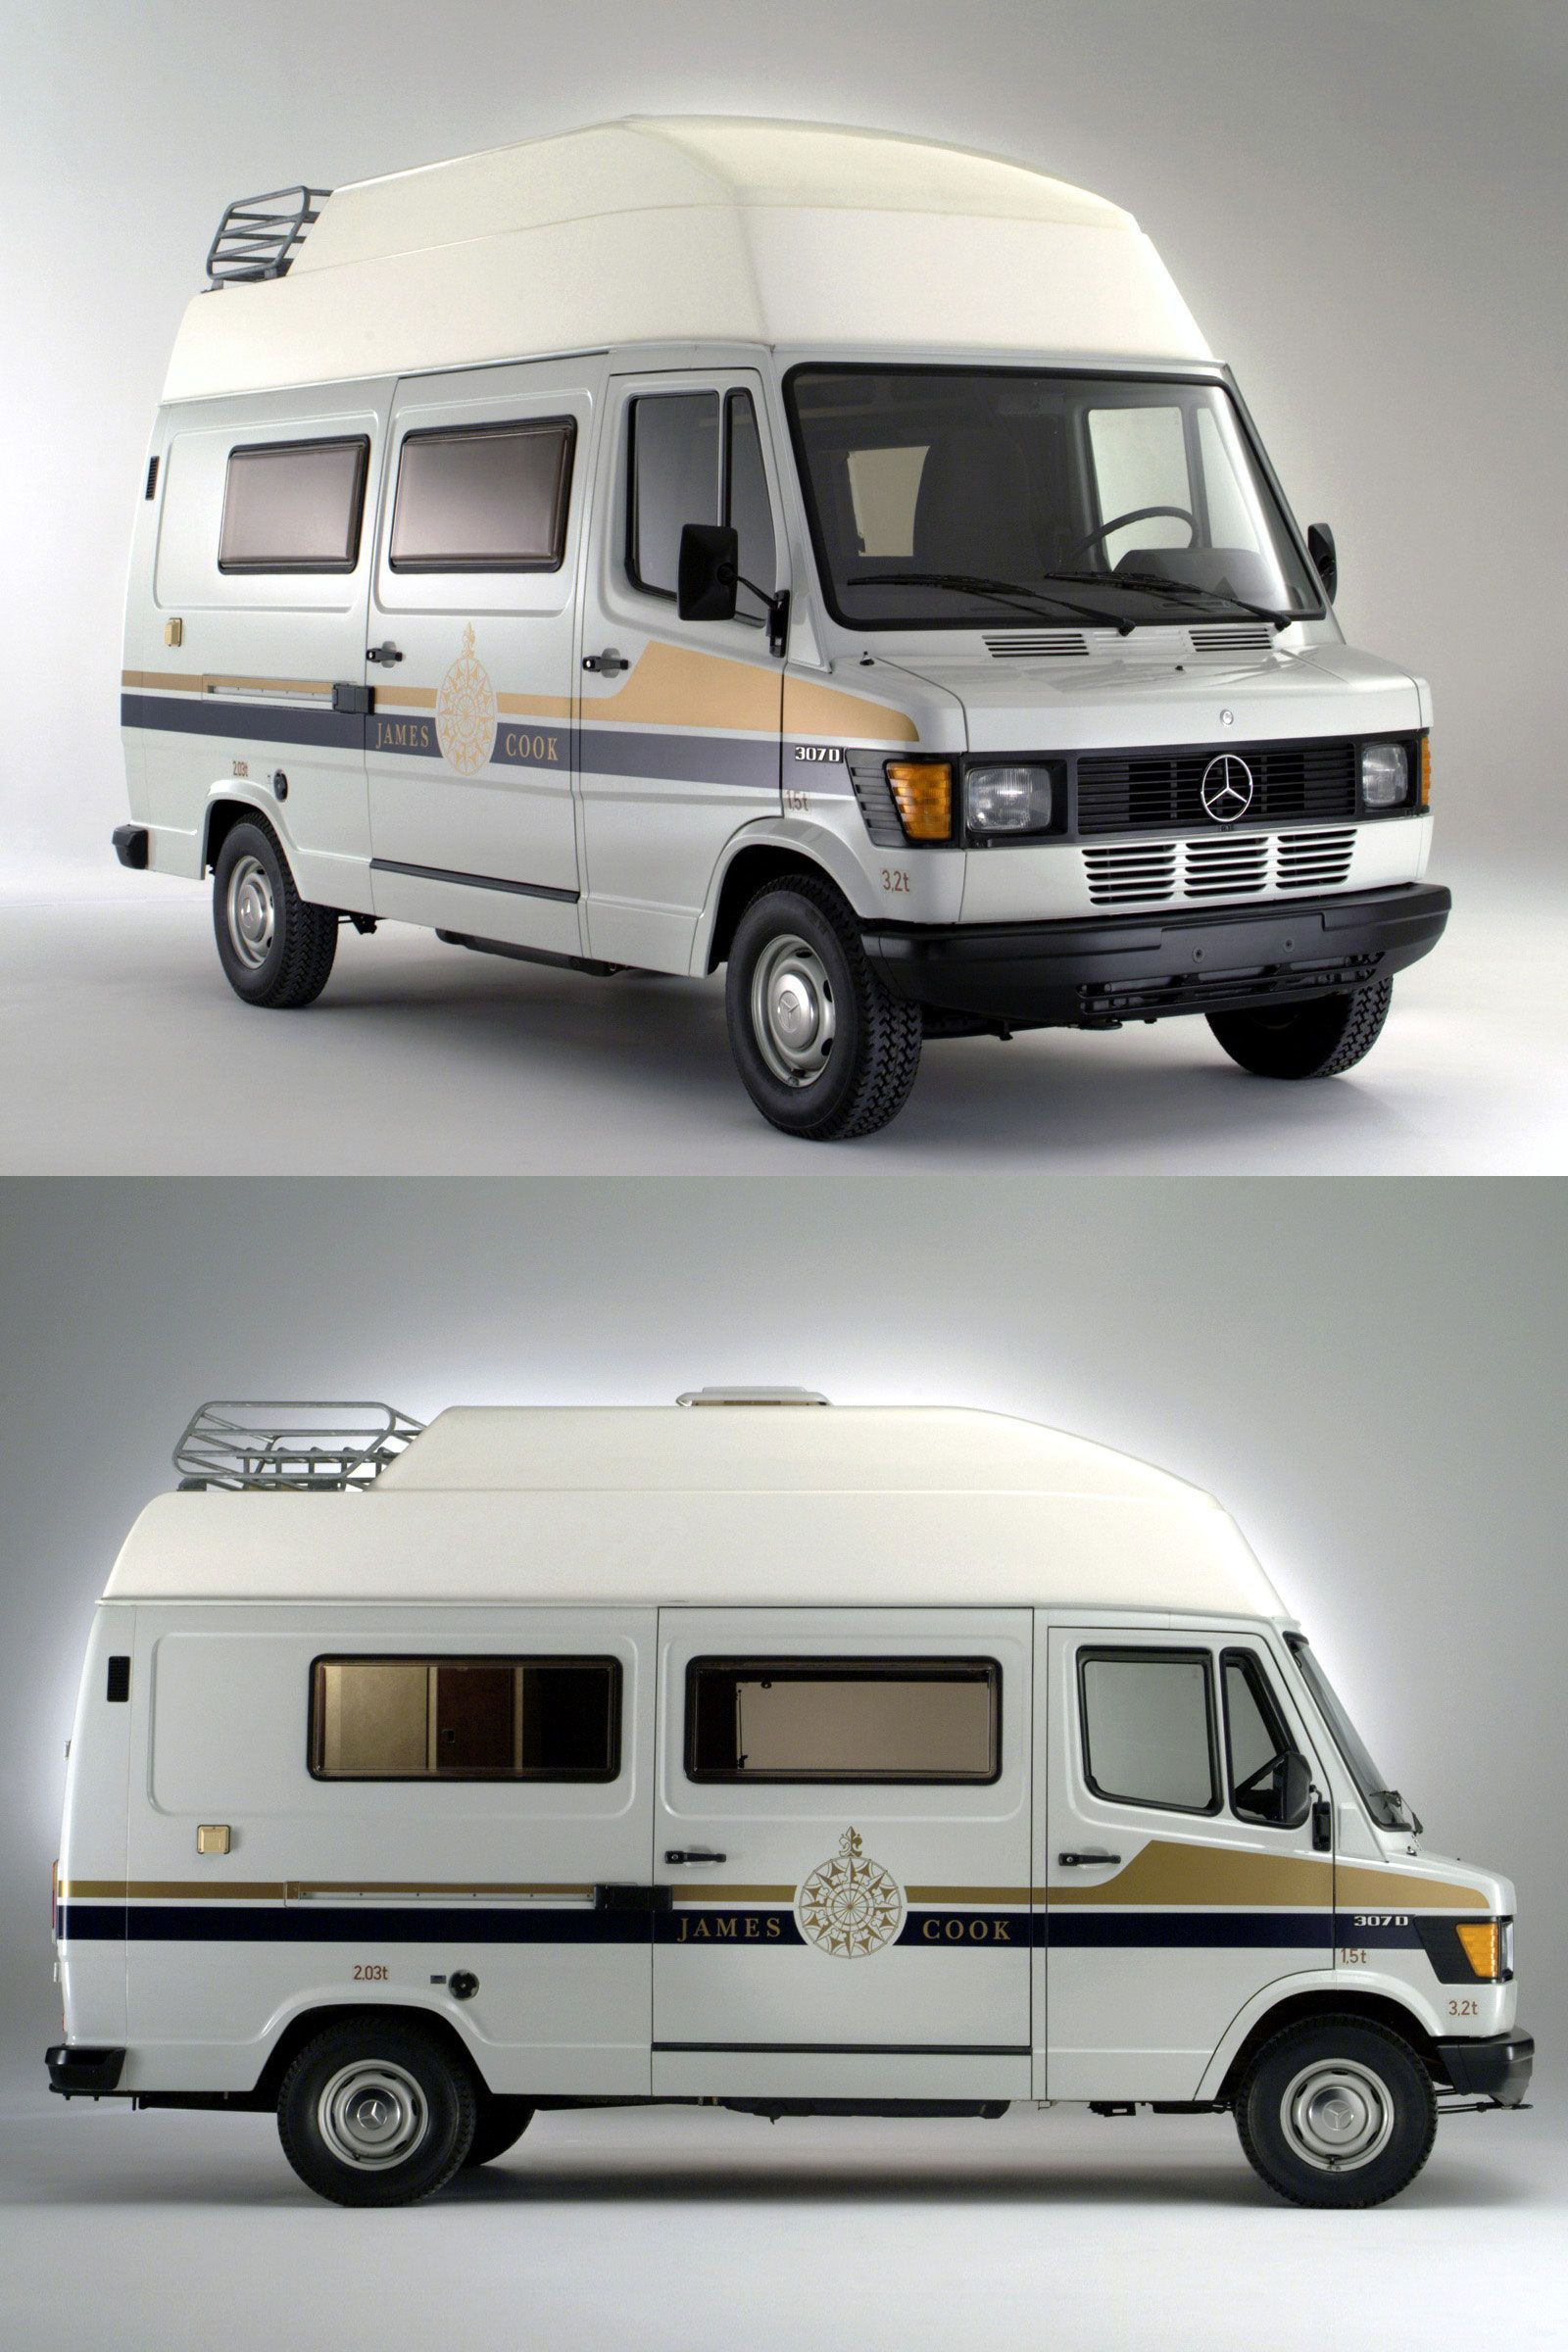 mercedes benz t1 307d wohnmobil 39 39 james cook 39 39 camper. Black Bedroom Furniture Sets. Home Design Ideas